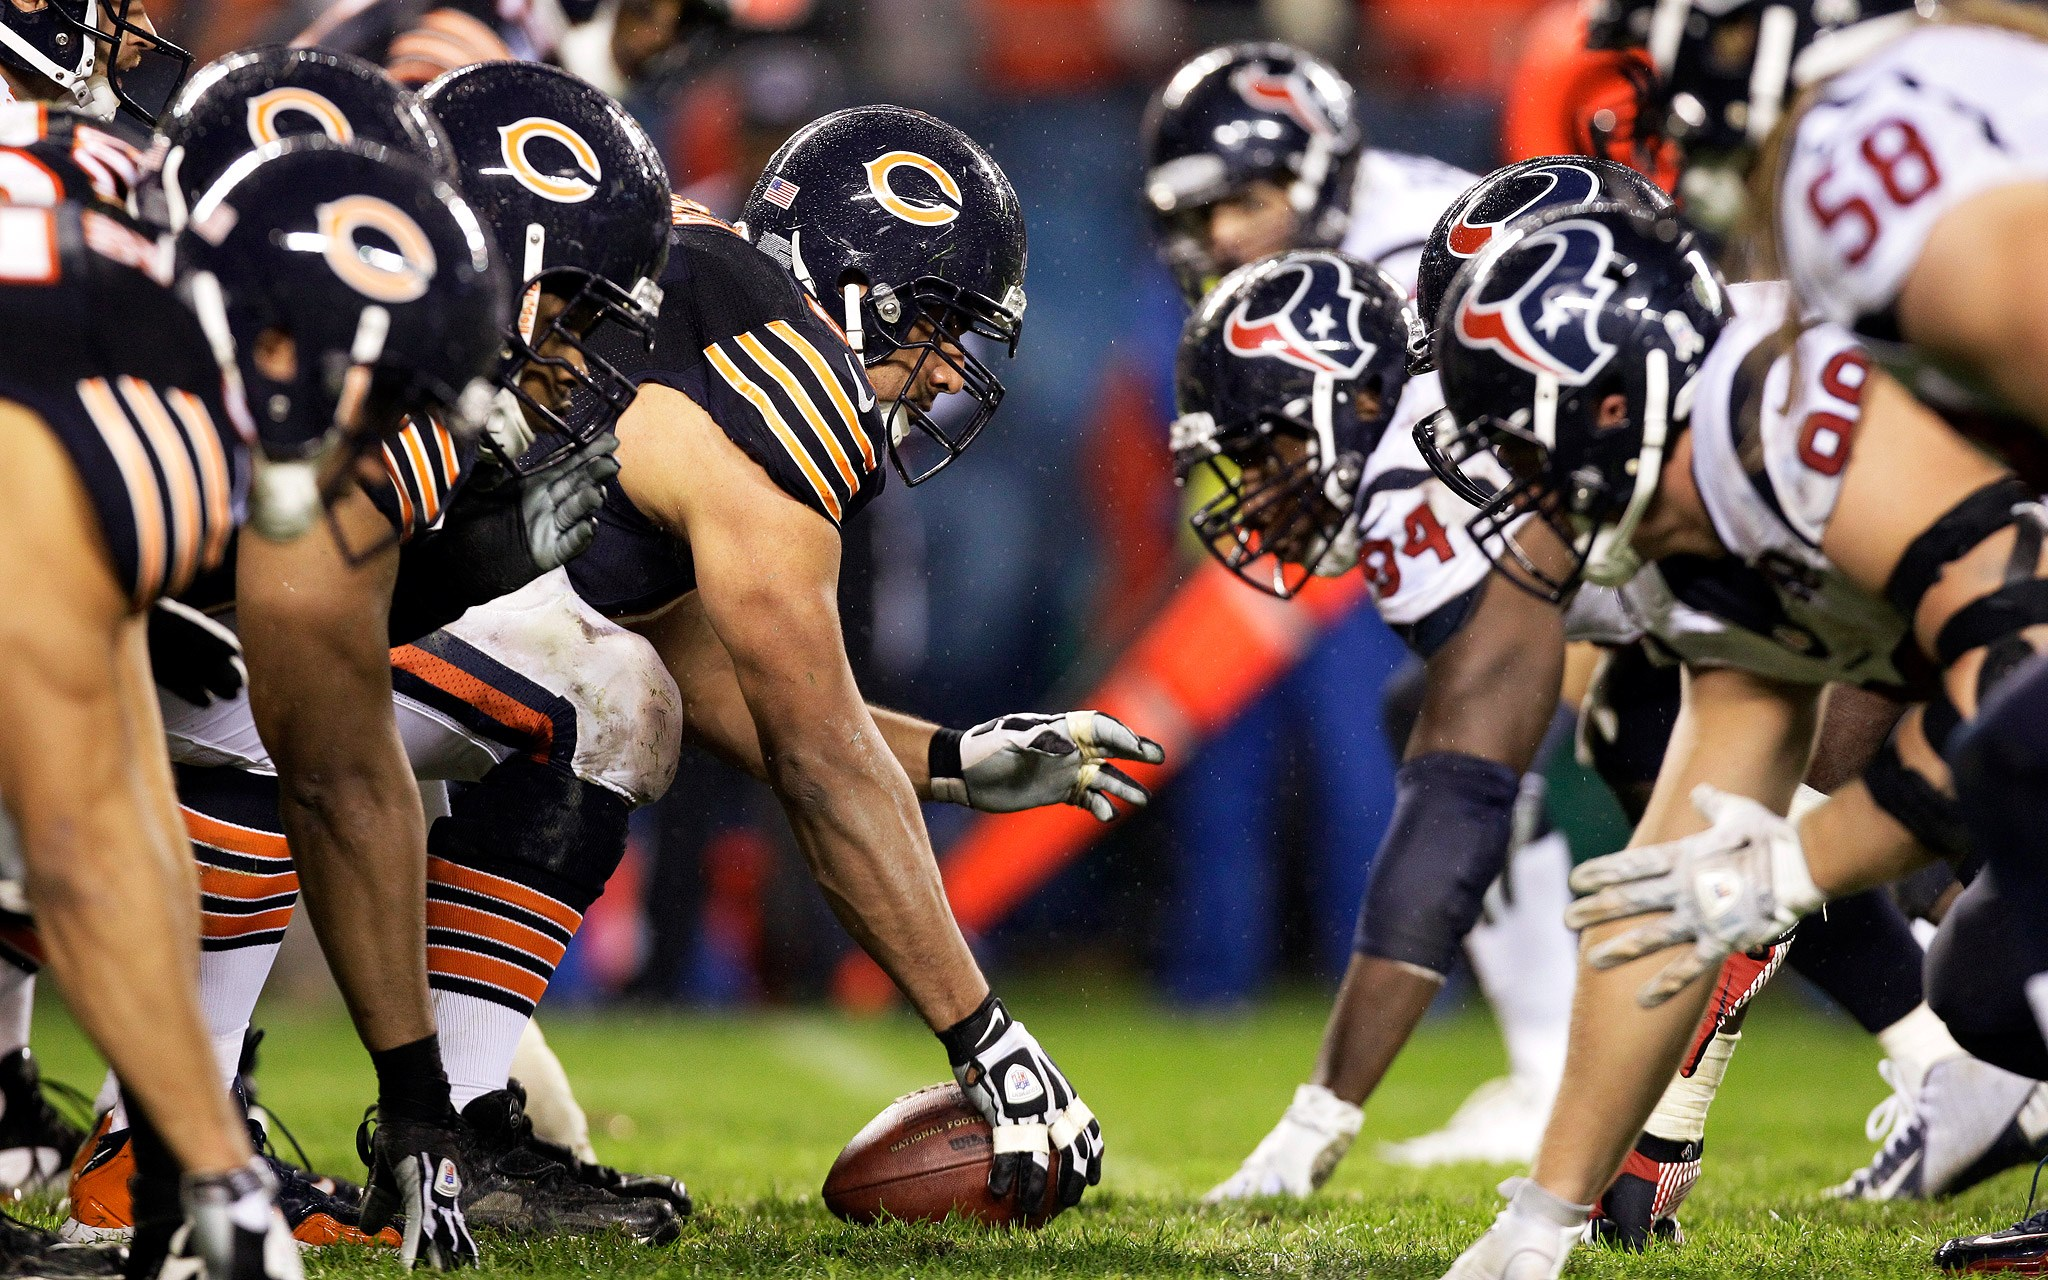 chicago-bears-hd-1080p-high-quality-wallpaper-wp3403870